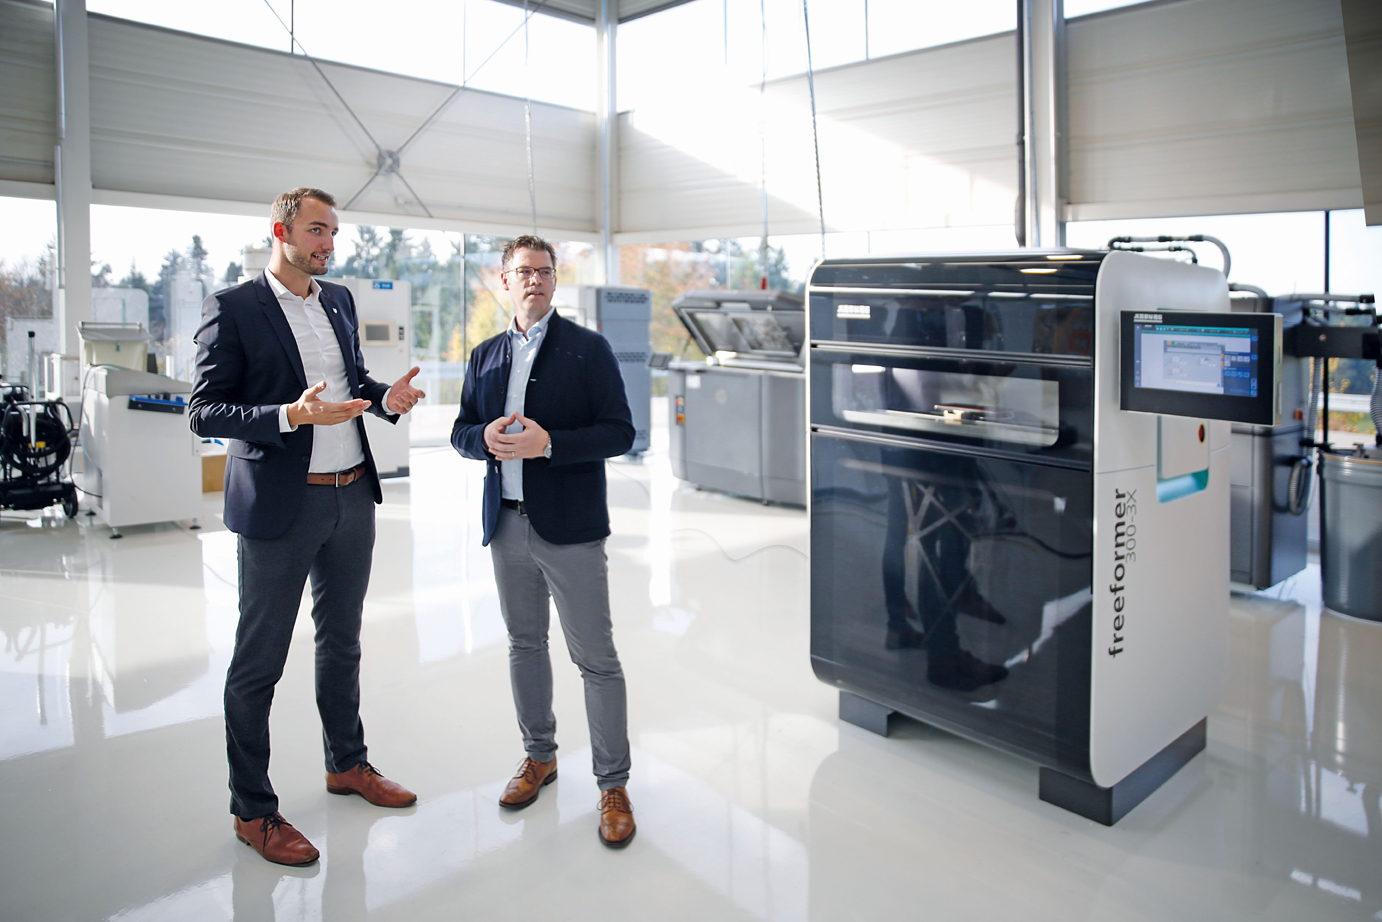 The two General Managers of Röchling Direct Manufacturing GmbH, Jens Harmeling (left) and Dr. Axel Höfter, are in charge of the Röchling Direct Manufacturing Center. Photo via Wolfgang Martini.